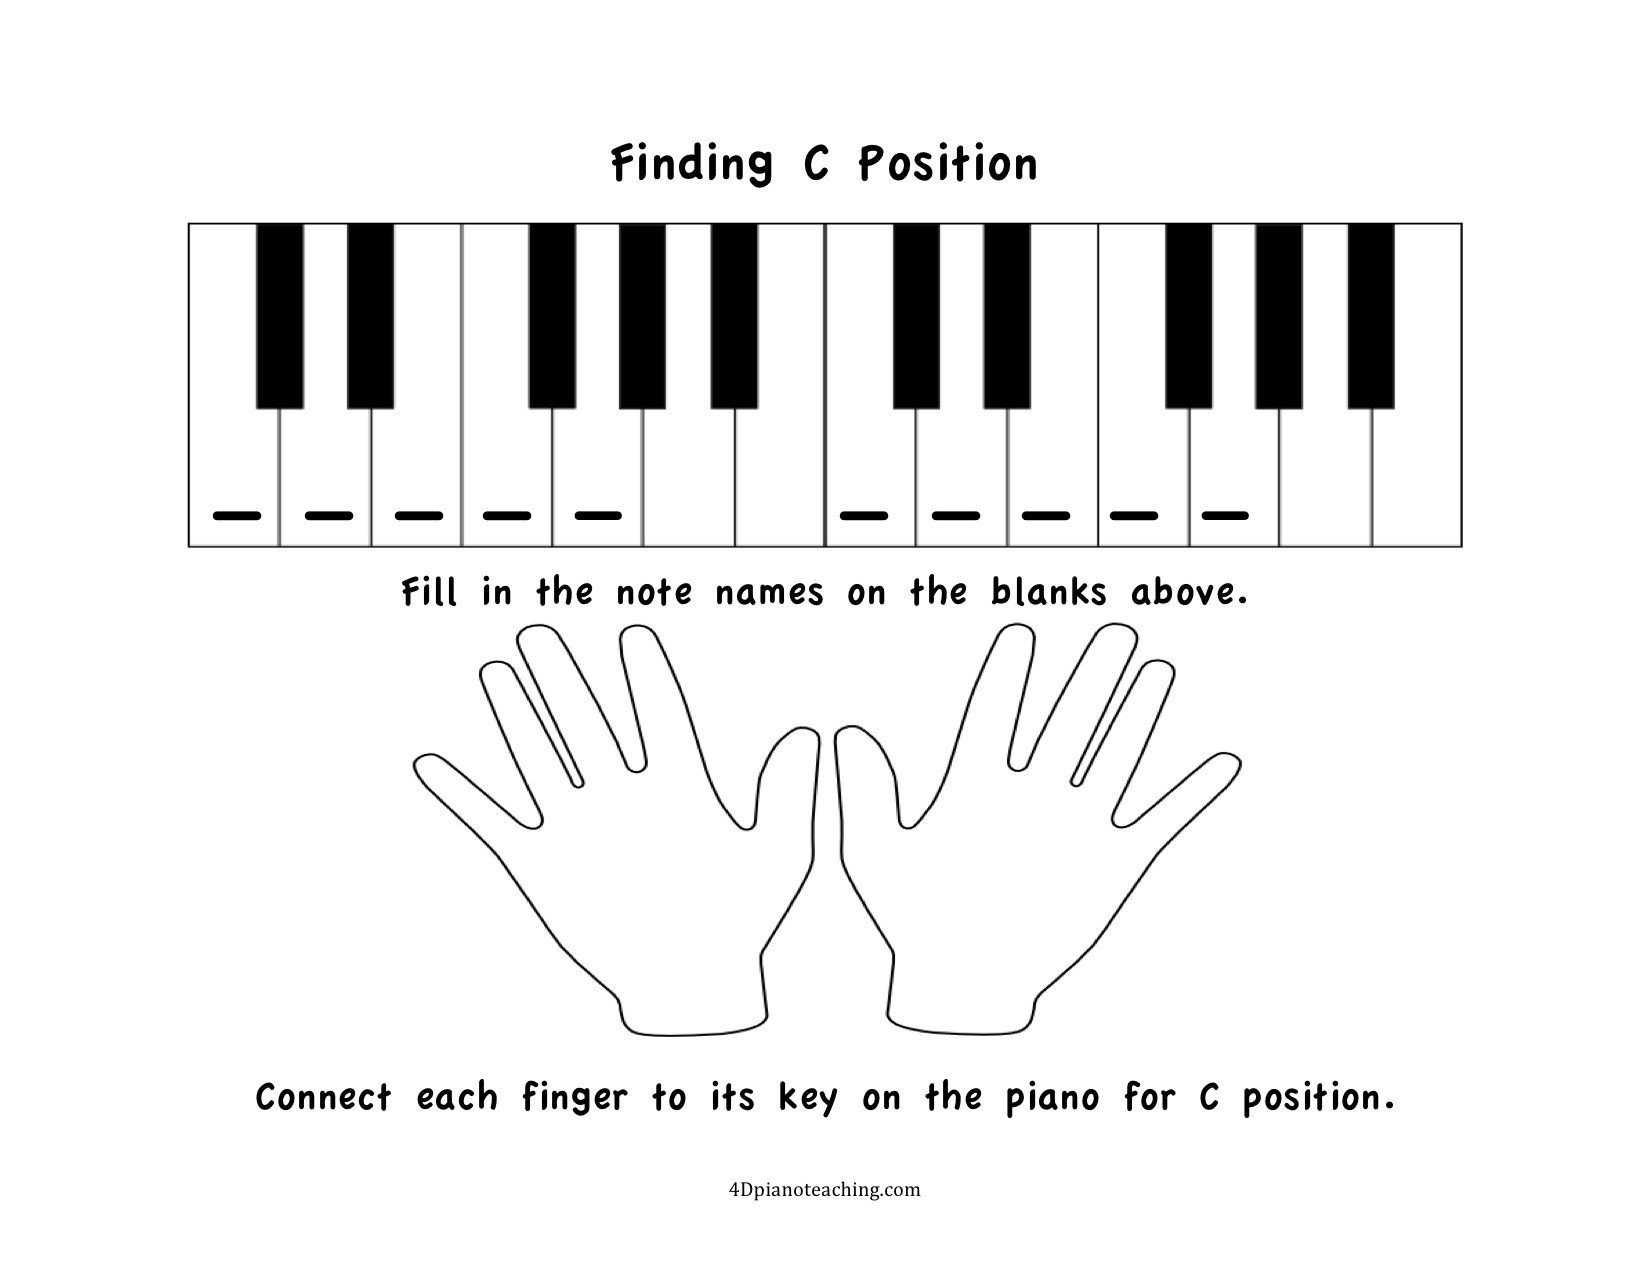 Free Printable Keyboarding Worksheets Free Printables C Position Worksheets 4dpianoteaching